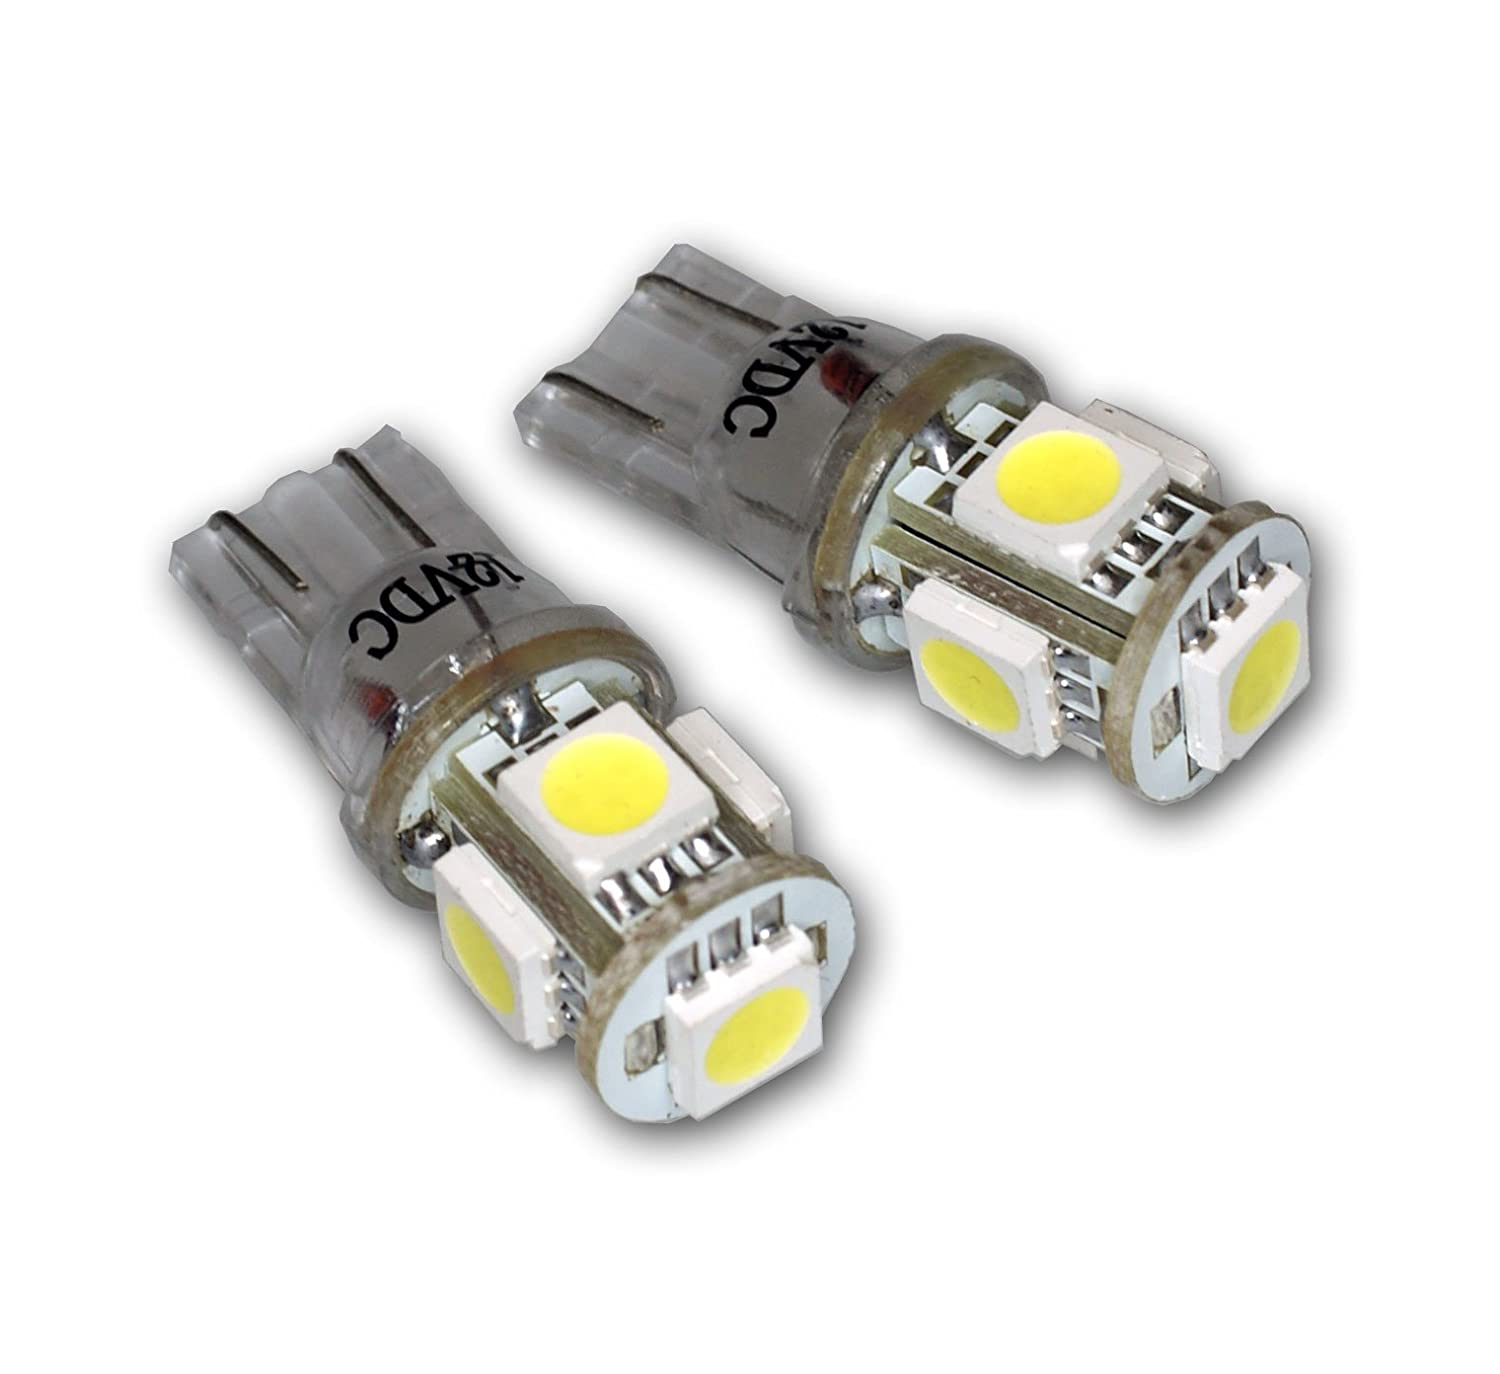 TuningPros LEDUHL-T10-WS5 Under Hood Light LED Light Bulbs T10 Wedge, 5 SMD LED White 2-pc Set